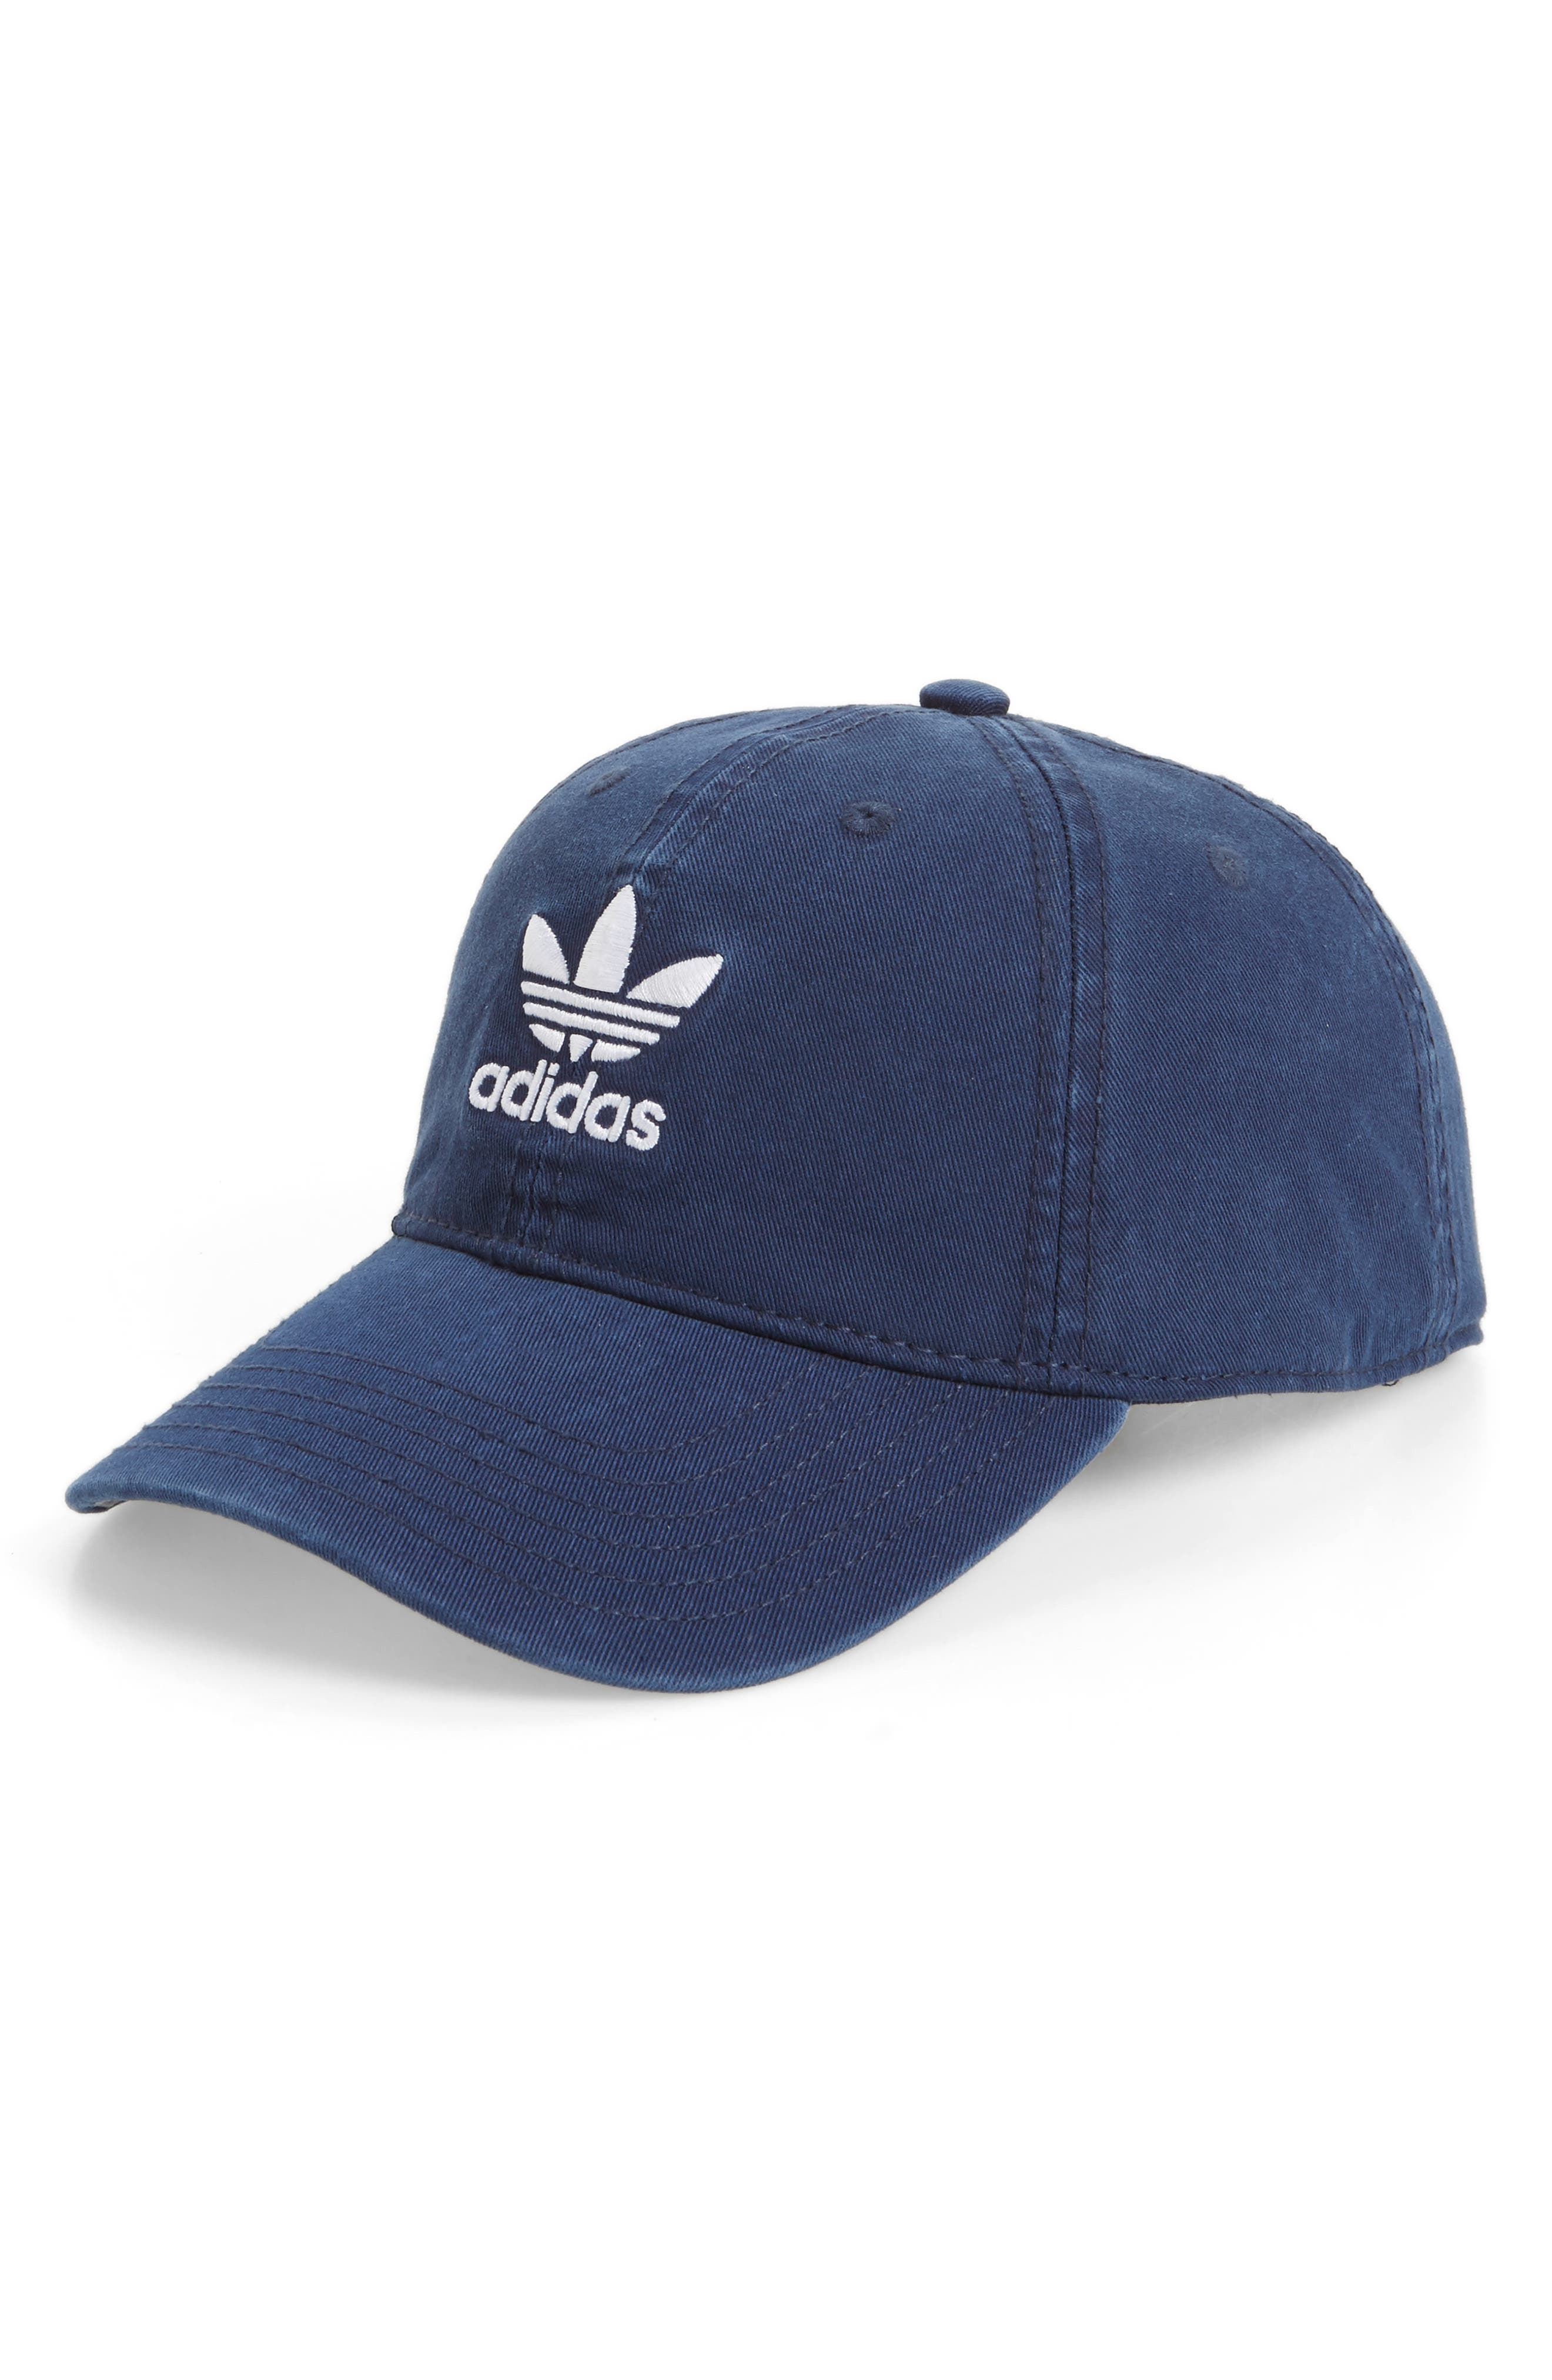 ADIDAS ORIGINALS, Relaxed Baseball Cap, Main thumbnail 1, color, NAVY